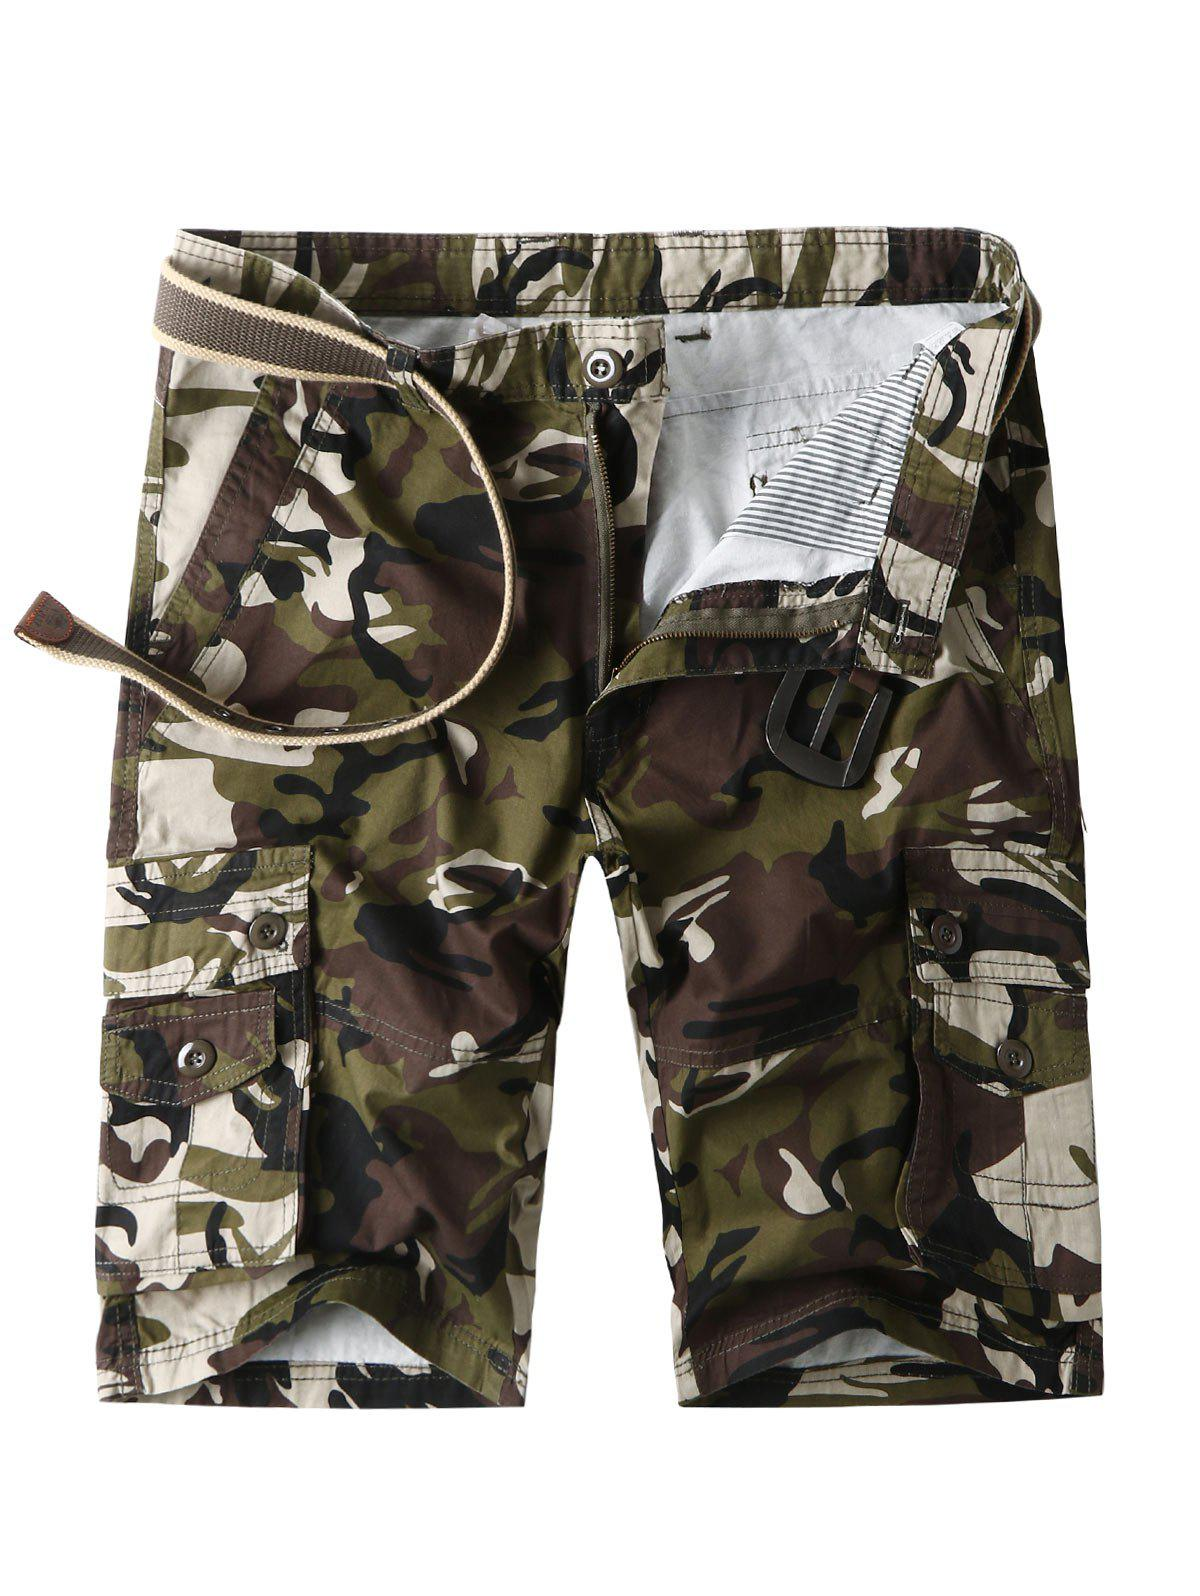 Zip Fly Flap Pockets Camo Cargo Shorts - ARMY GREEN 32